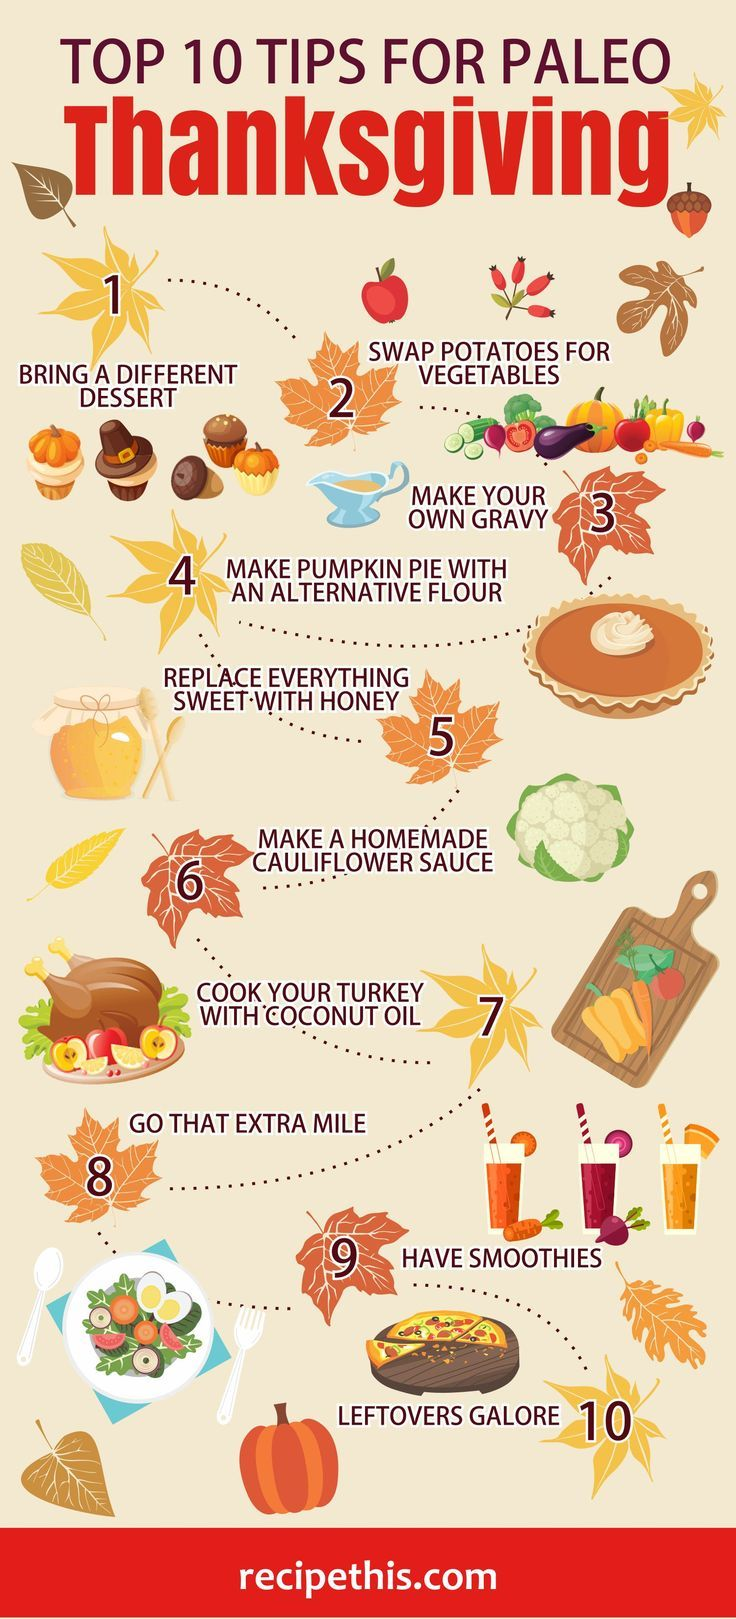 Cooking Tips | Here are top 10 tips for a Paleo thanksgiving from RecipeThis.com